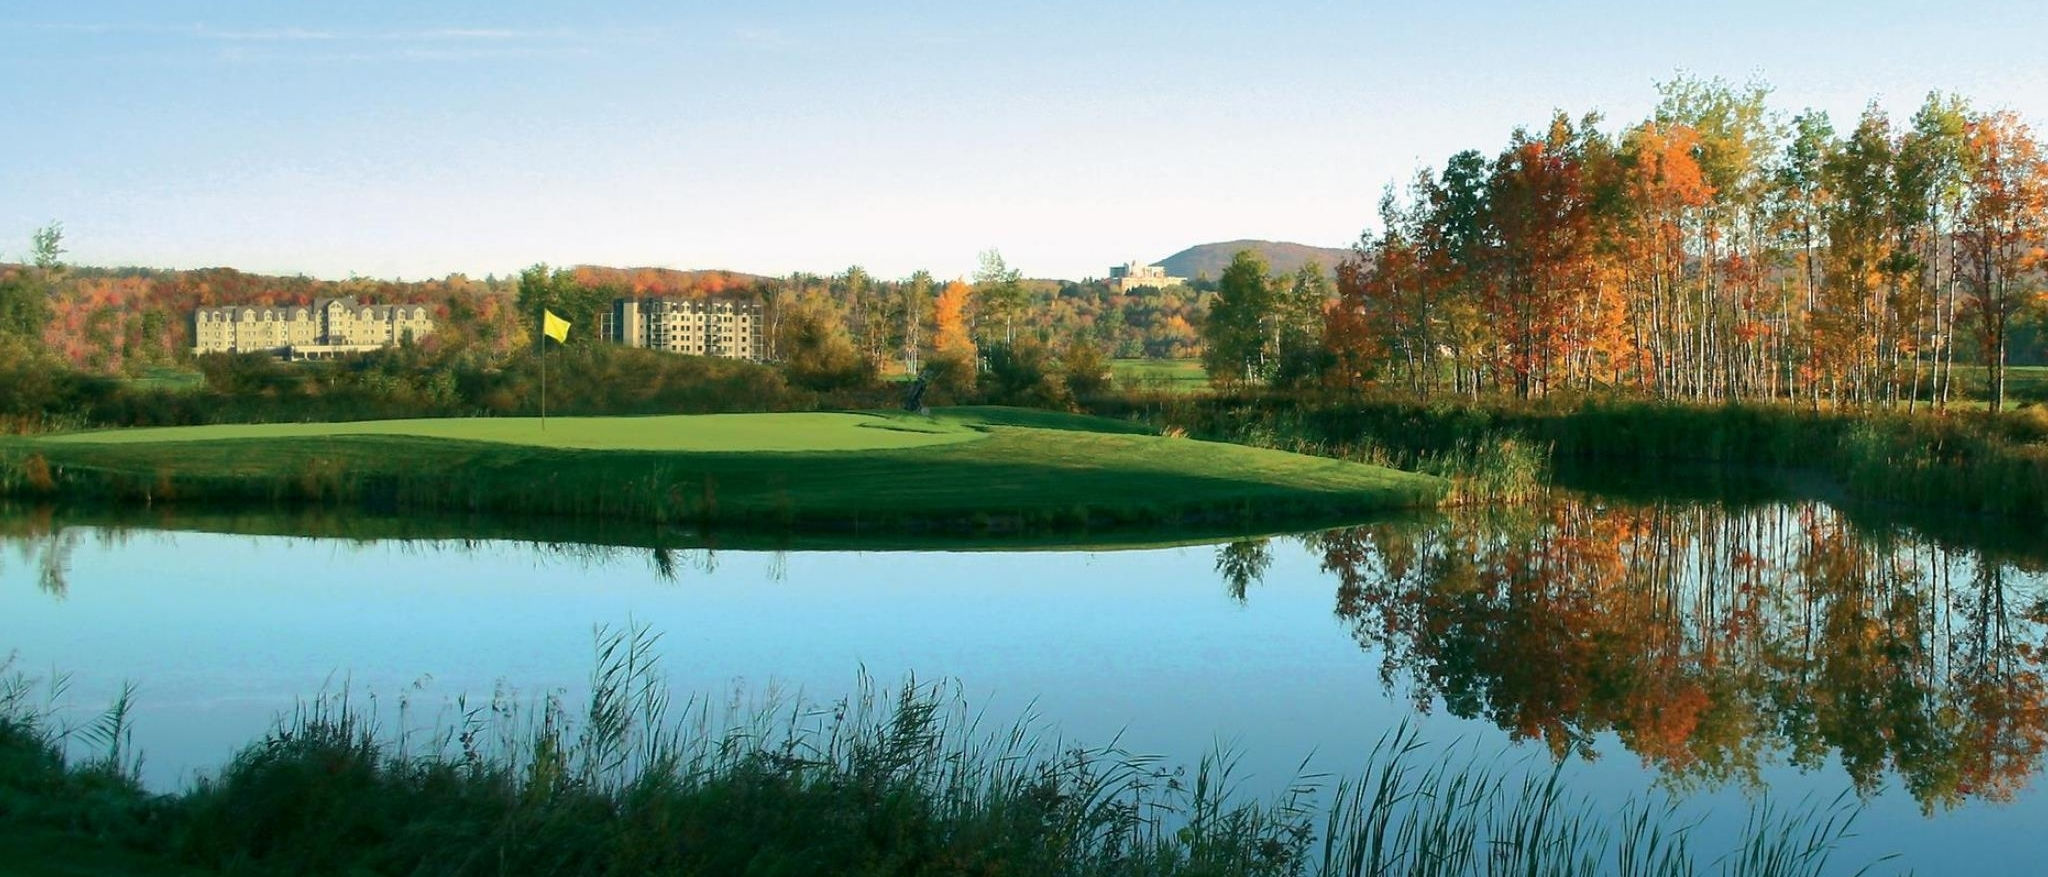 Four Points by Sheraton Quebec Resort | Golf de la Faune